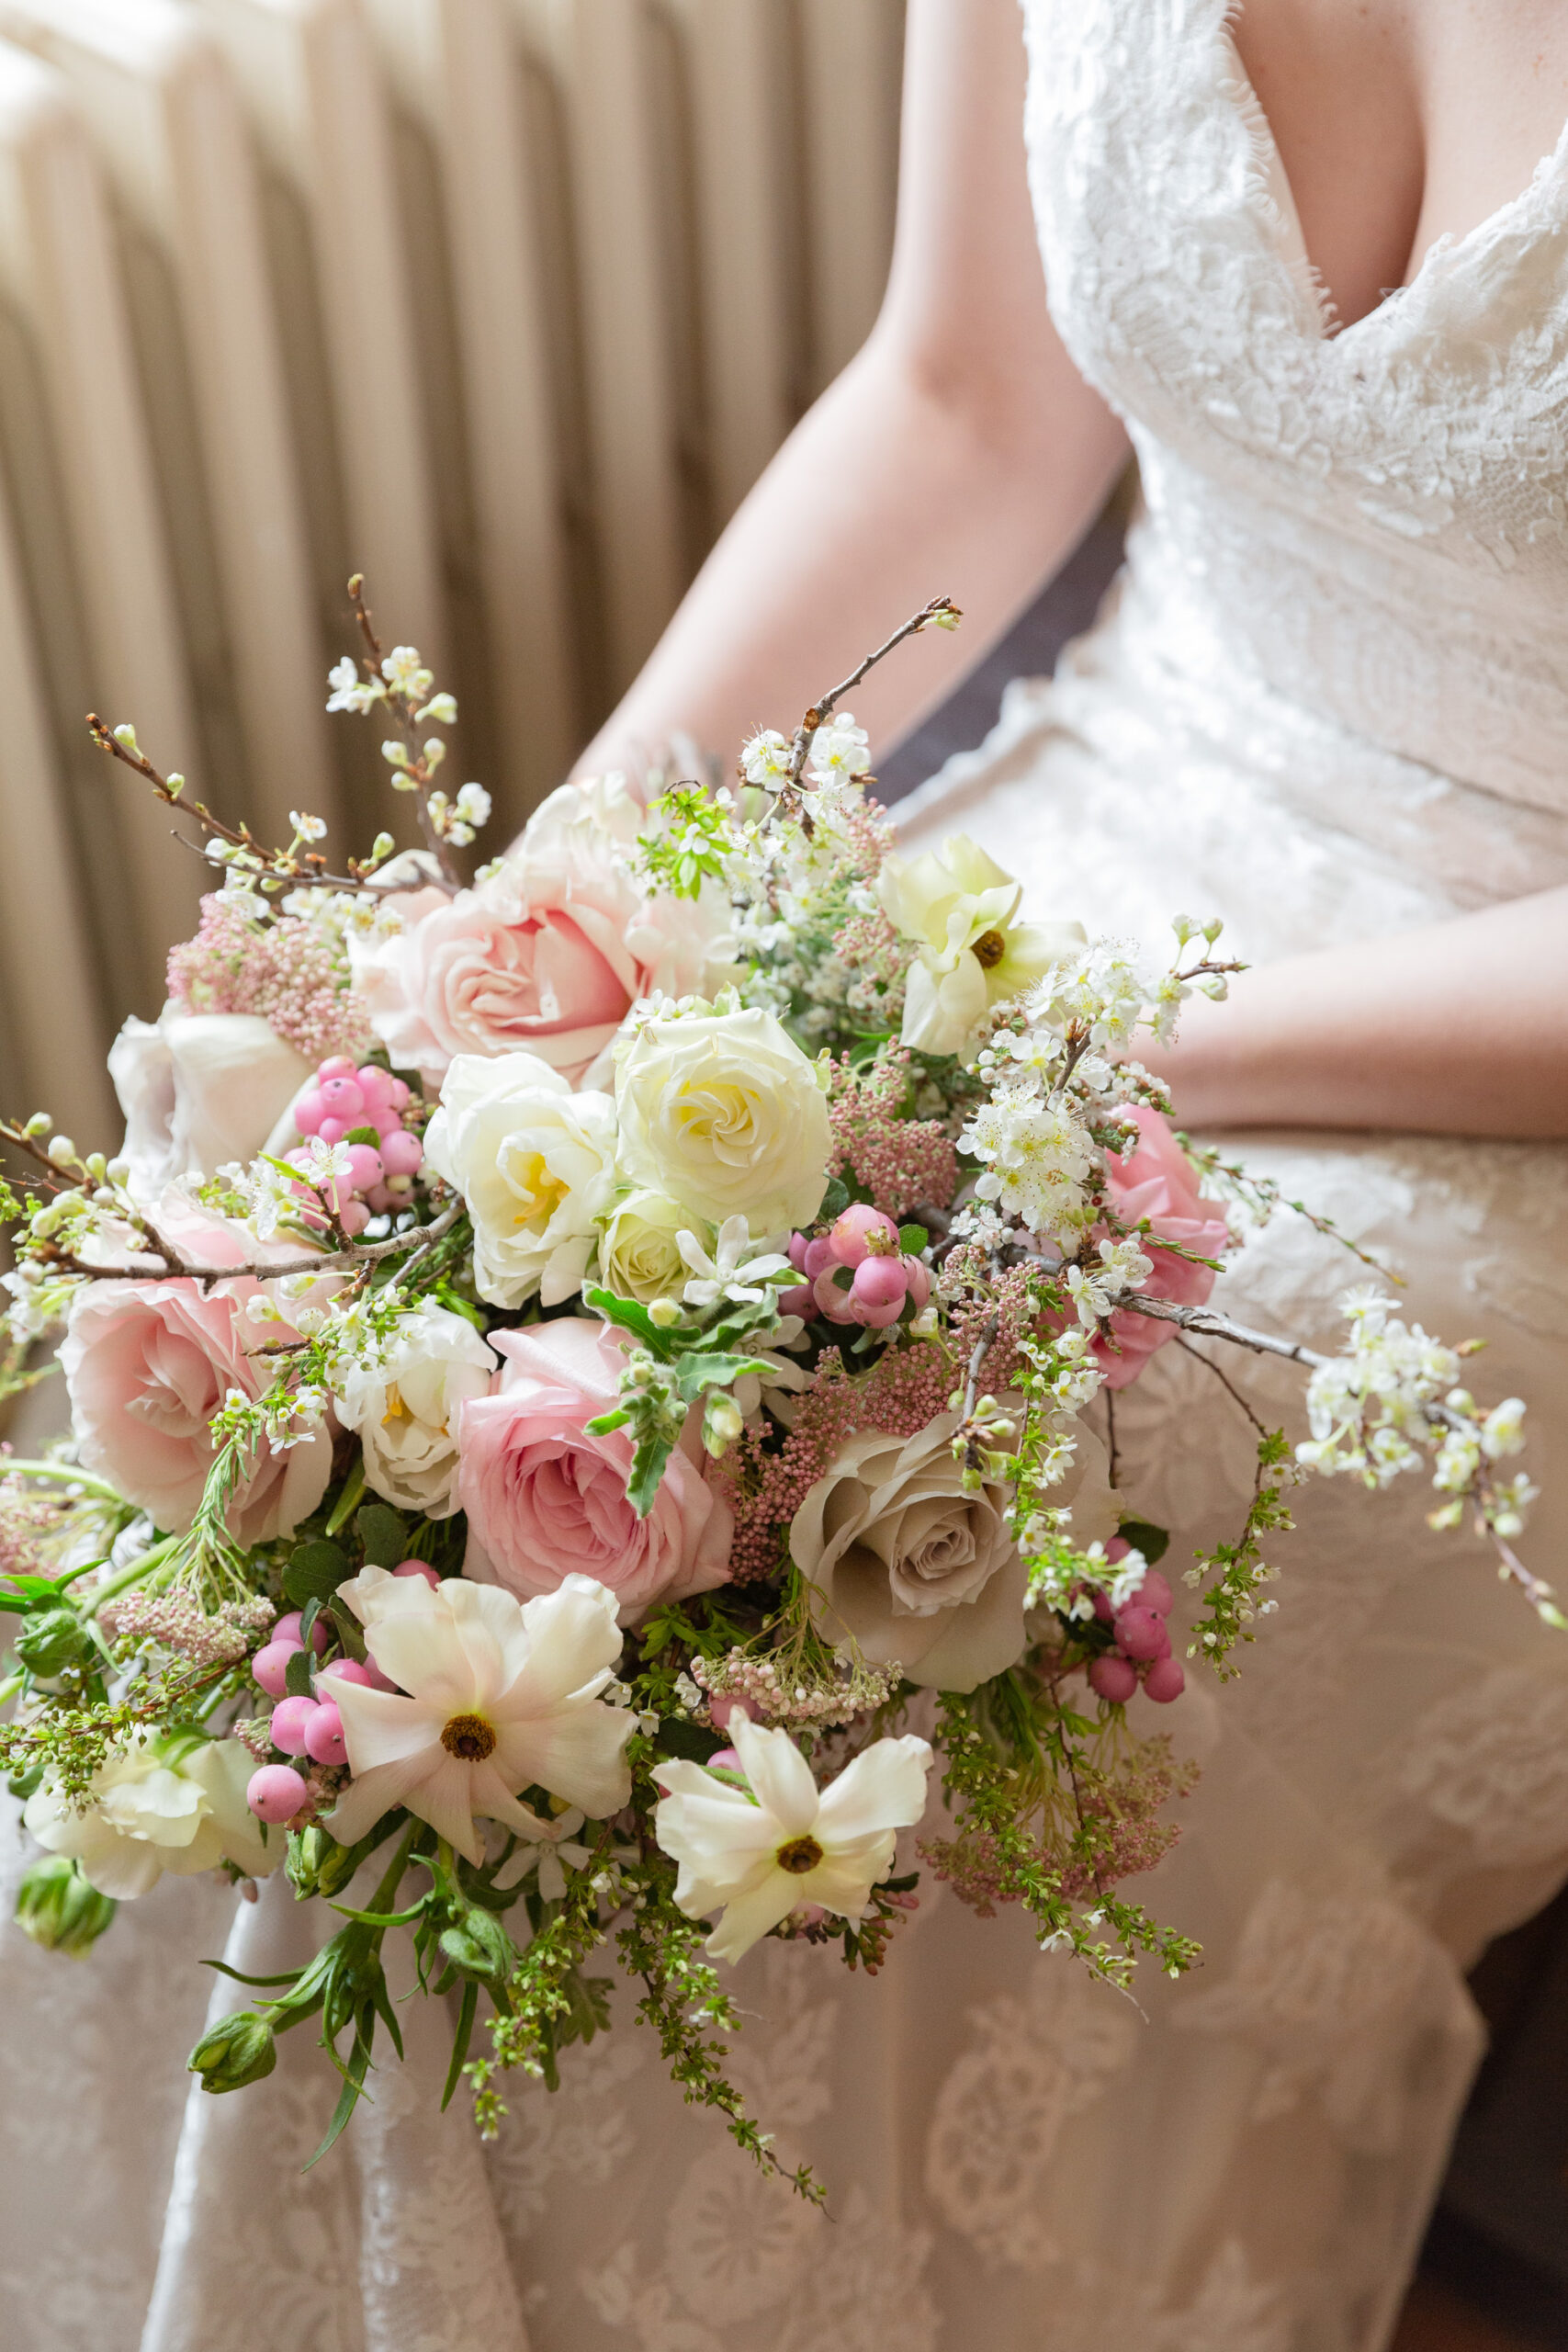 Lush spring bridal bouquet at the Sayre Mansion in Bethlehem, PA by Laura Billingham Photography